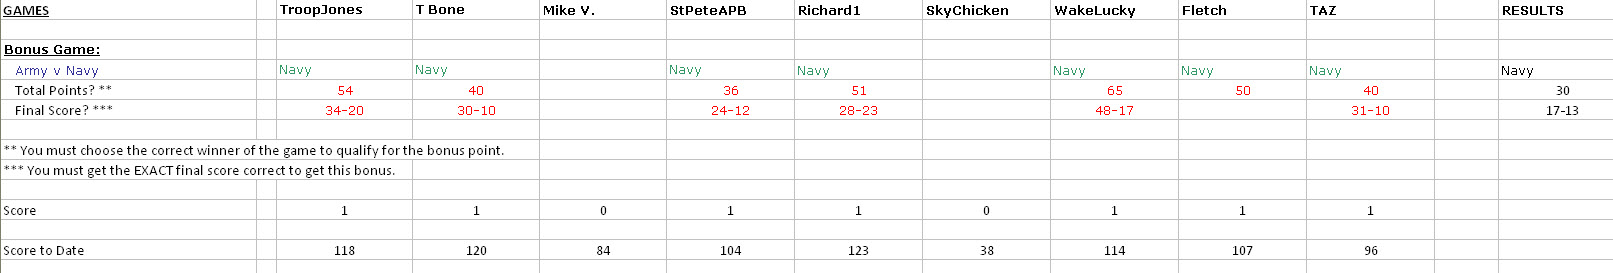 Click image for larger version  Name:Army-Navy_Results.jpg Views:177 Size:83.7 KB ID:15655